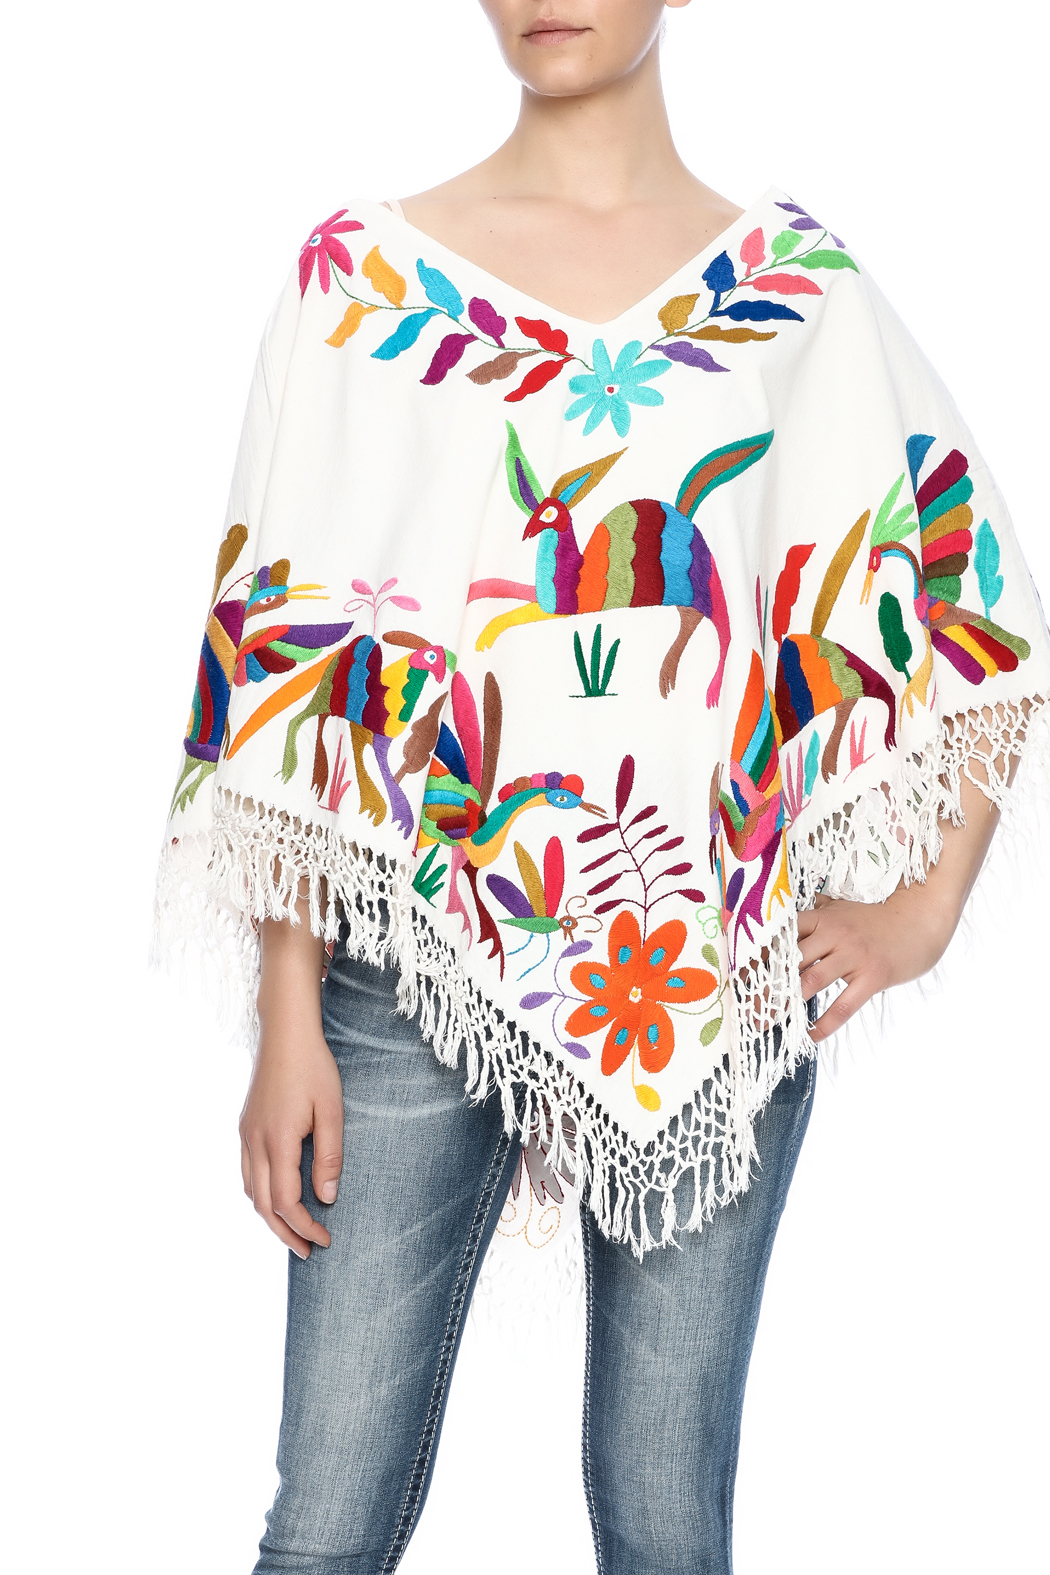 Nativa Mexican Embroidered Poncho from Texas — Shoptiques